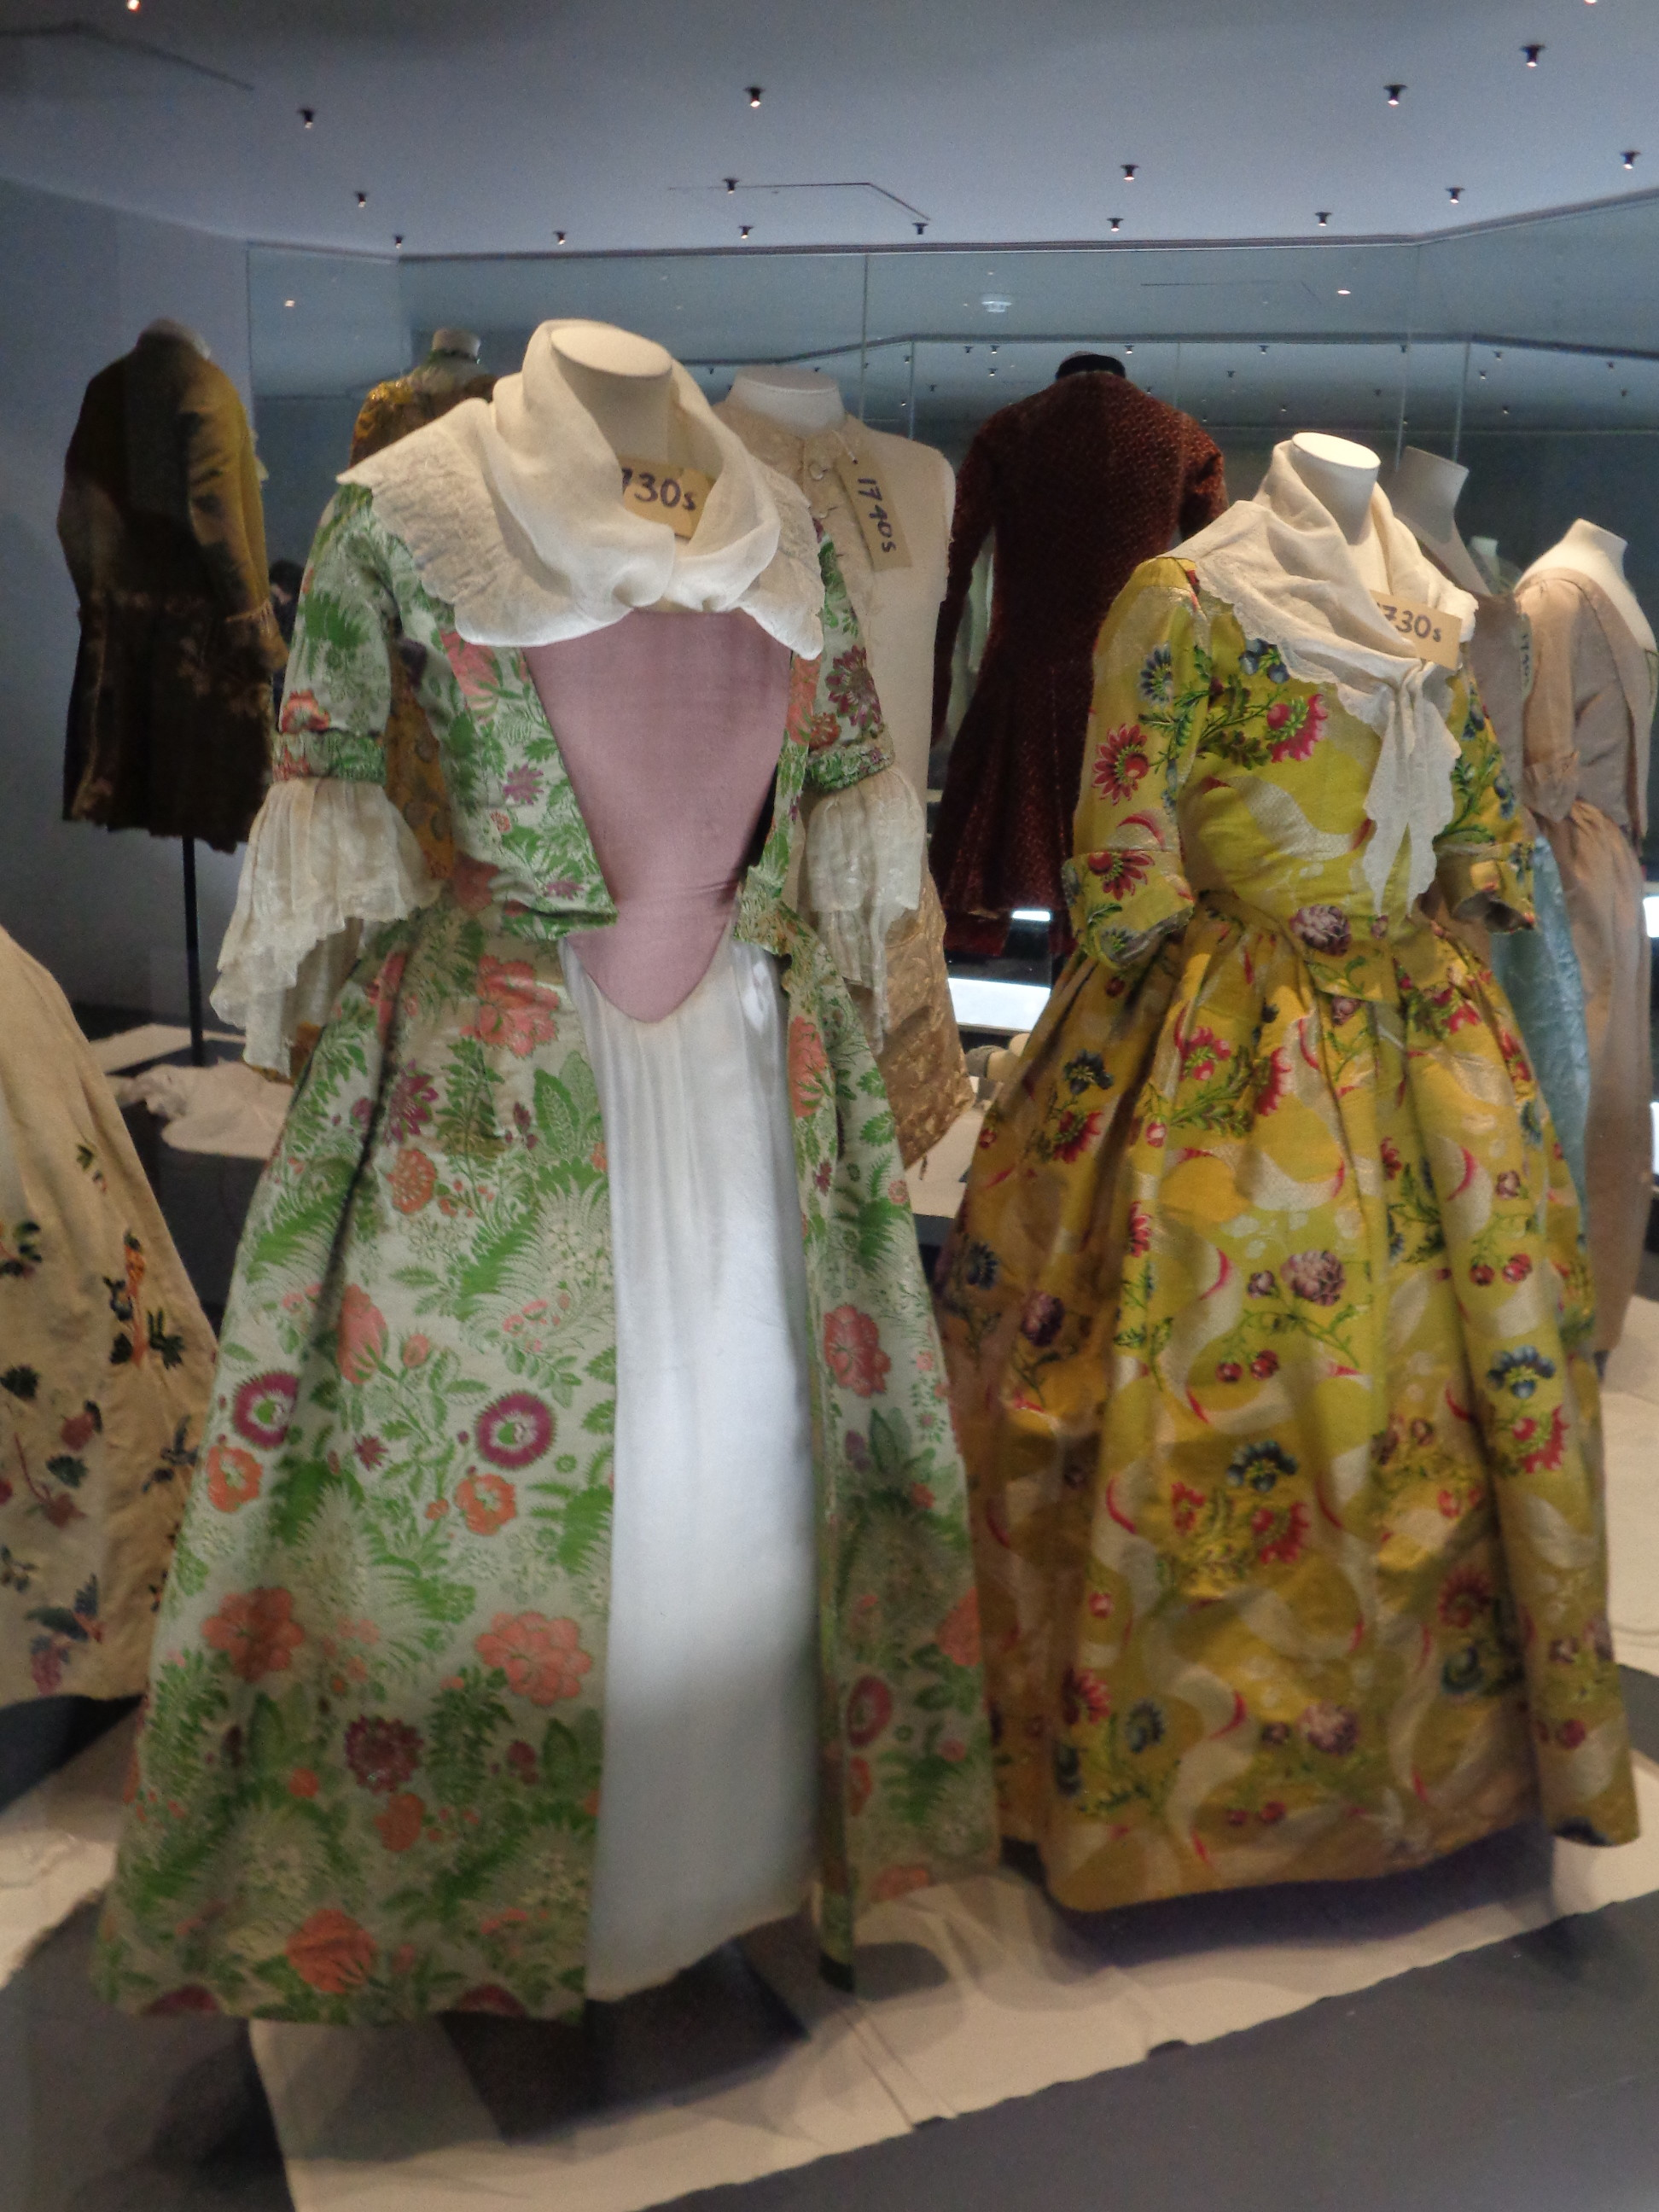 18th c seamstress - 1730s dresses